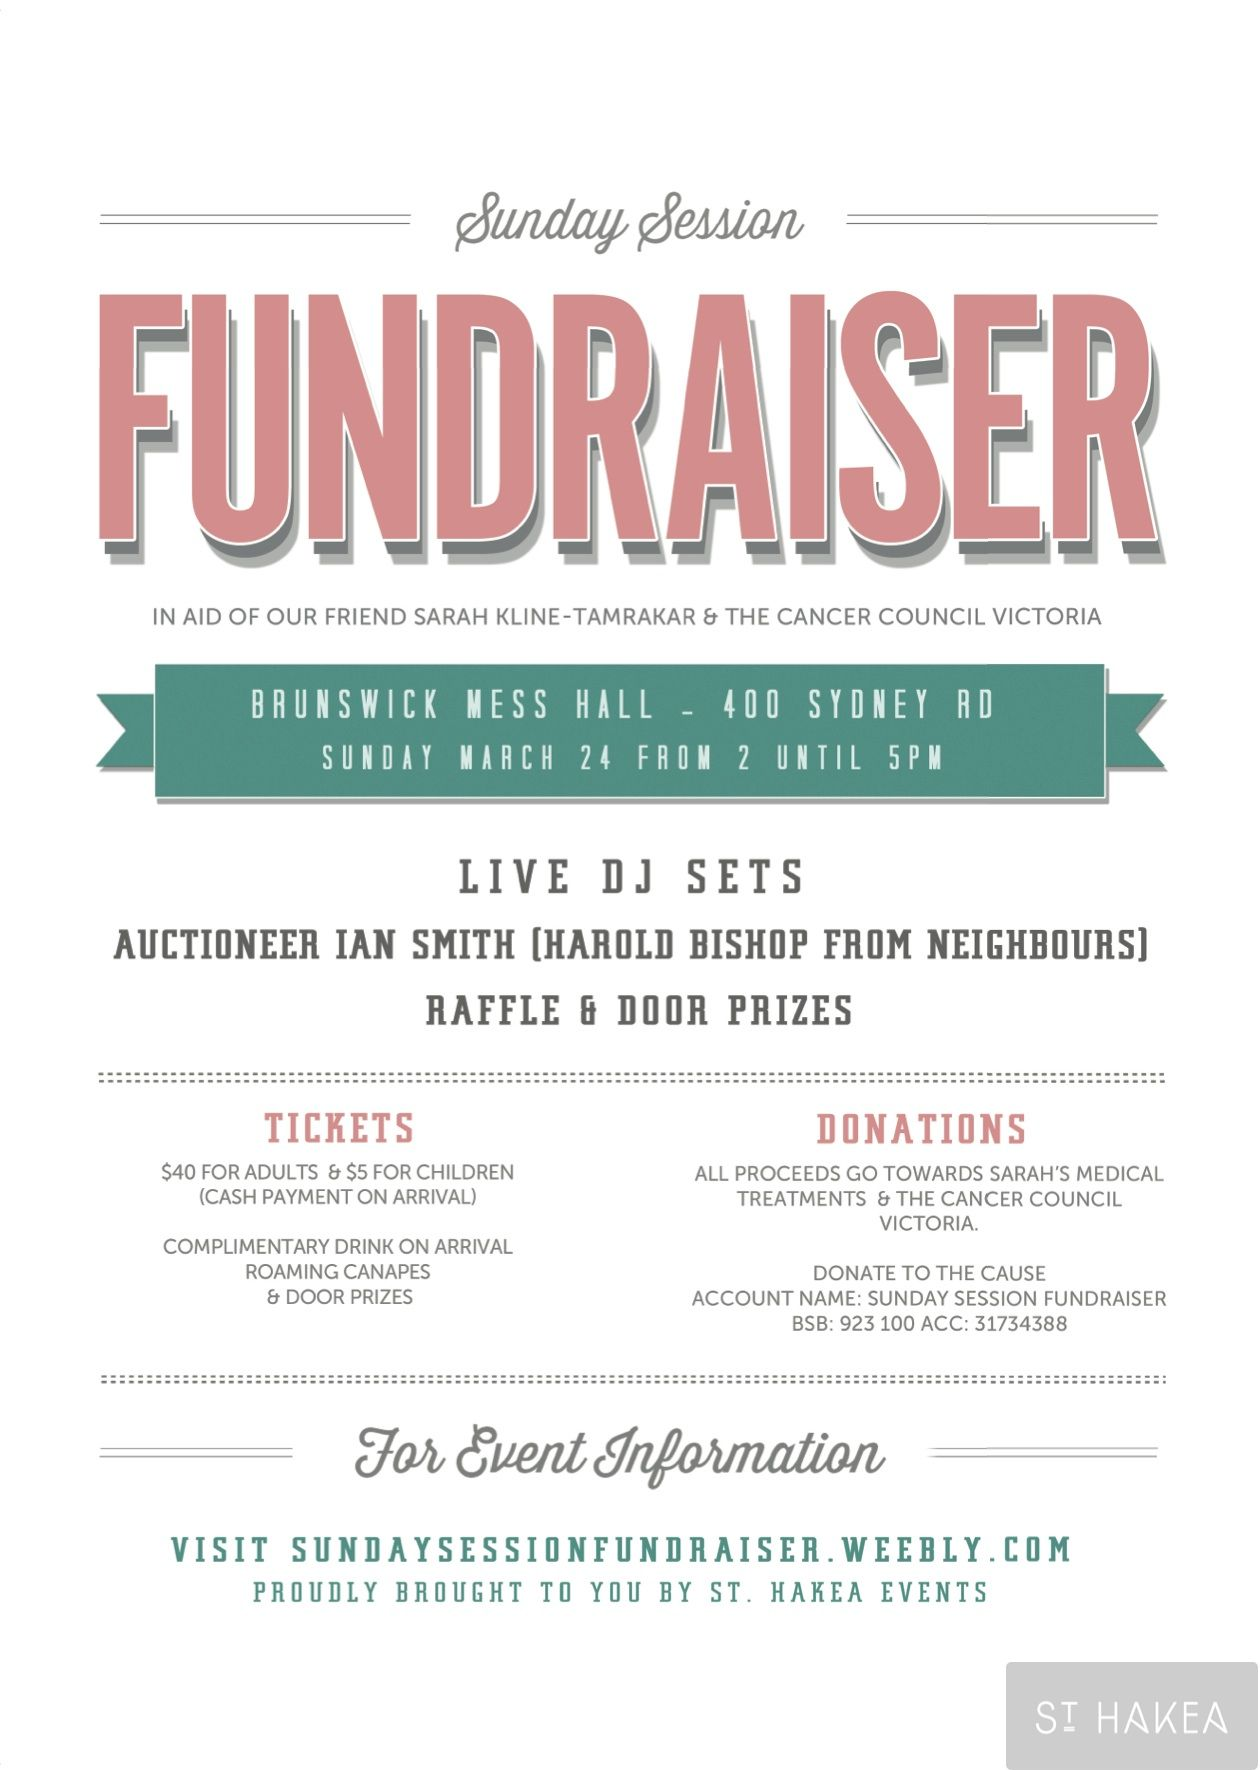 Sunday Session Fundraiser event flyer Proudly bought to you by St Hakea Events sthakeacom